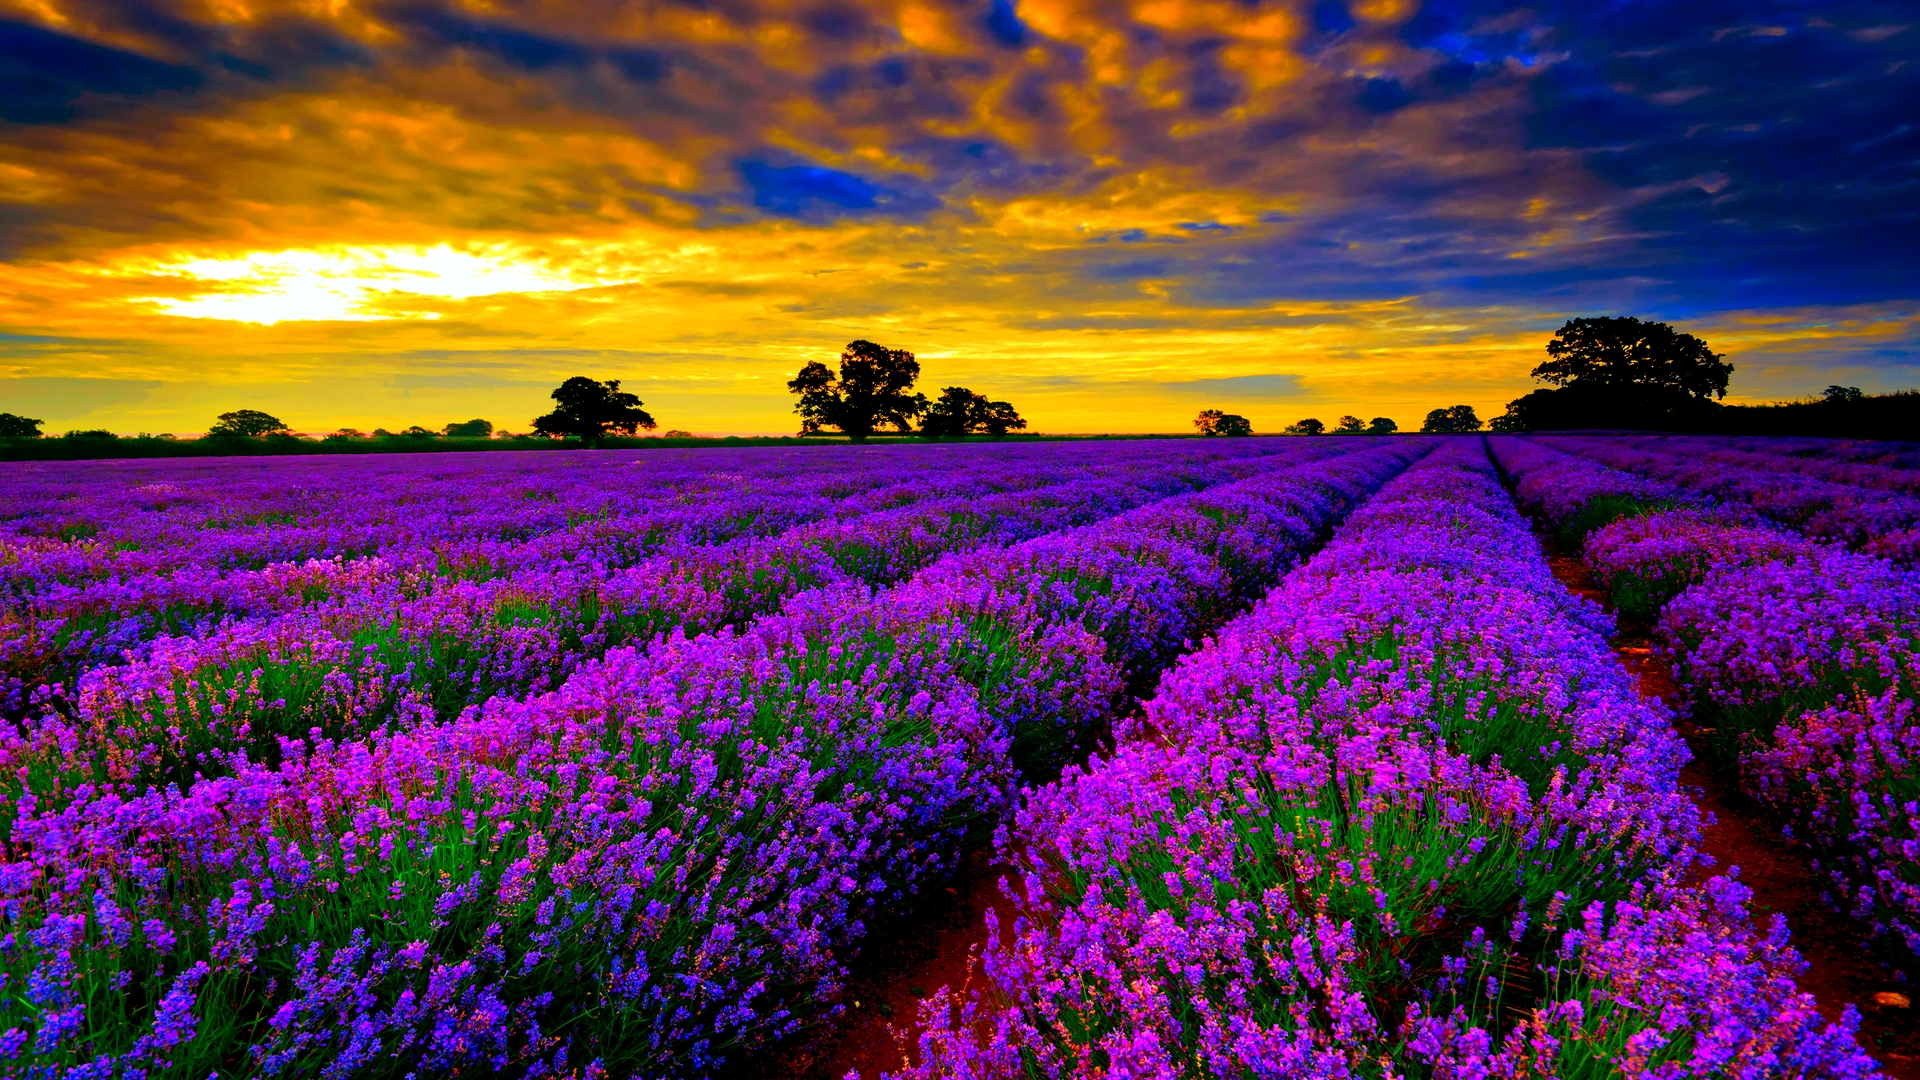 colorful wallpapers, pictures, images